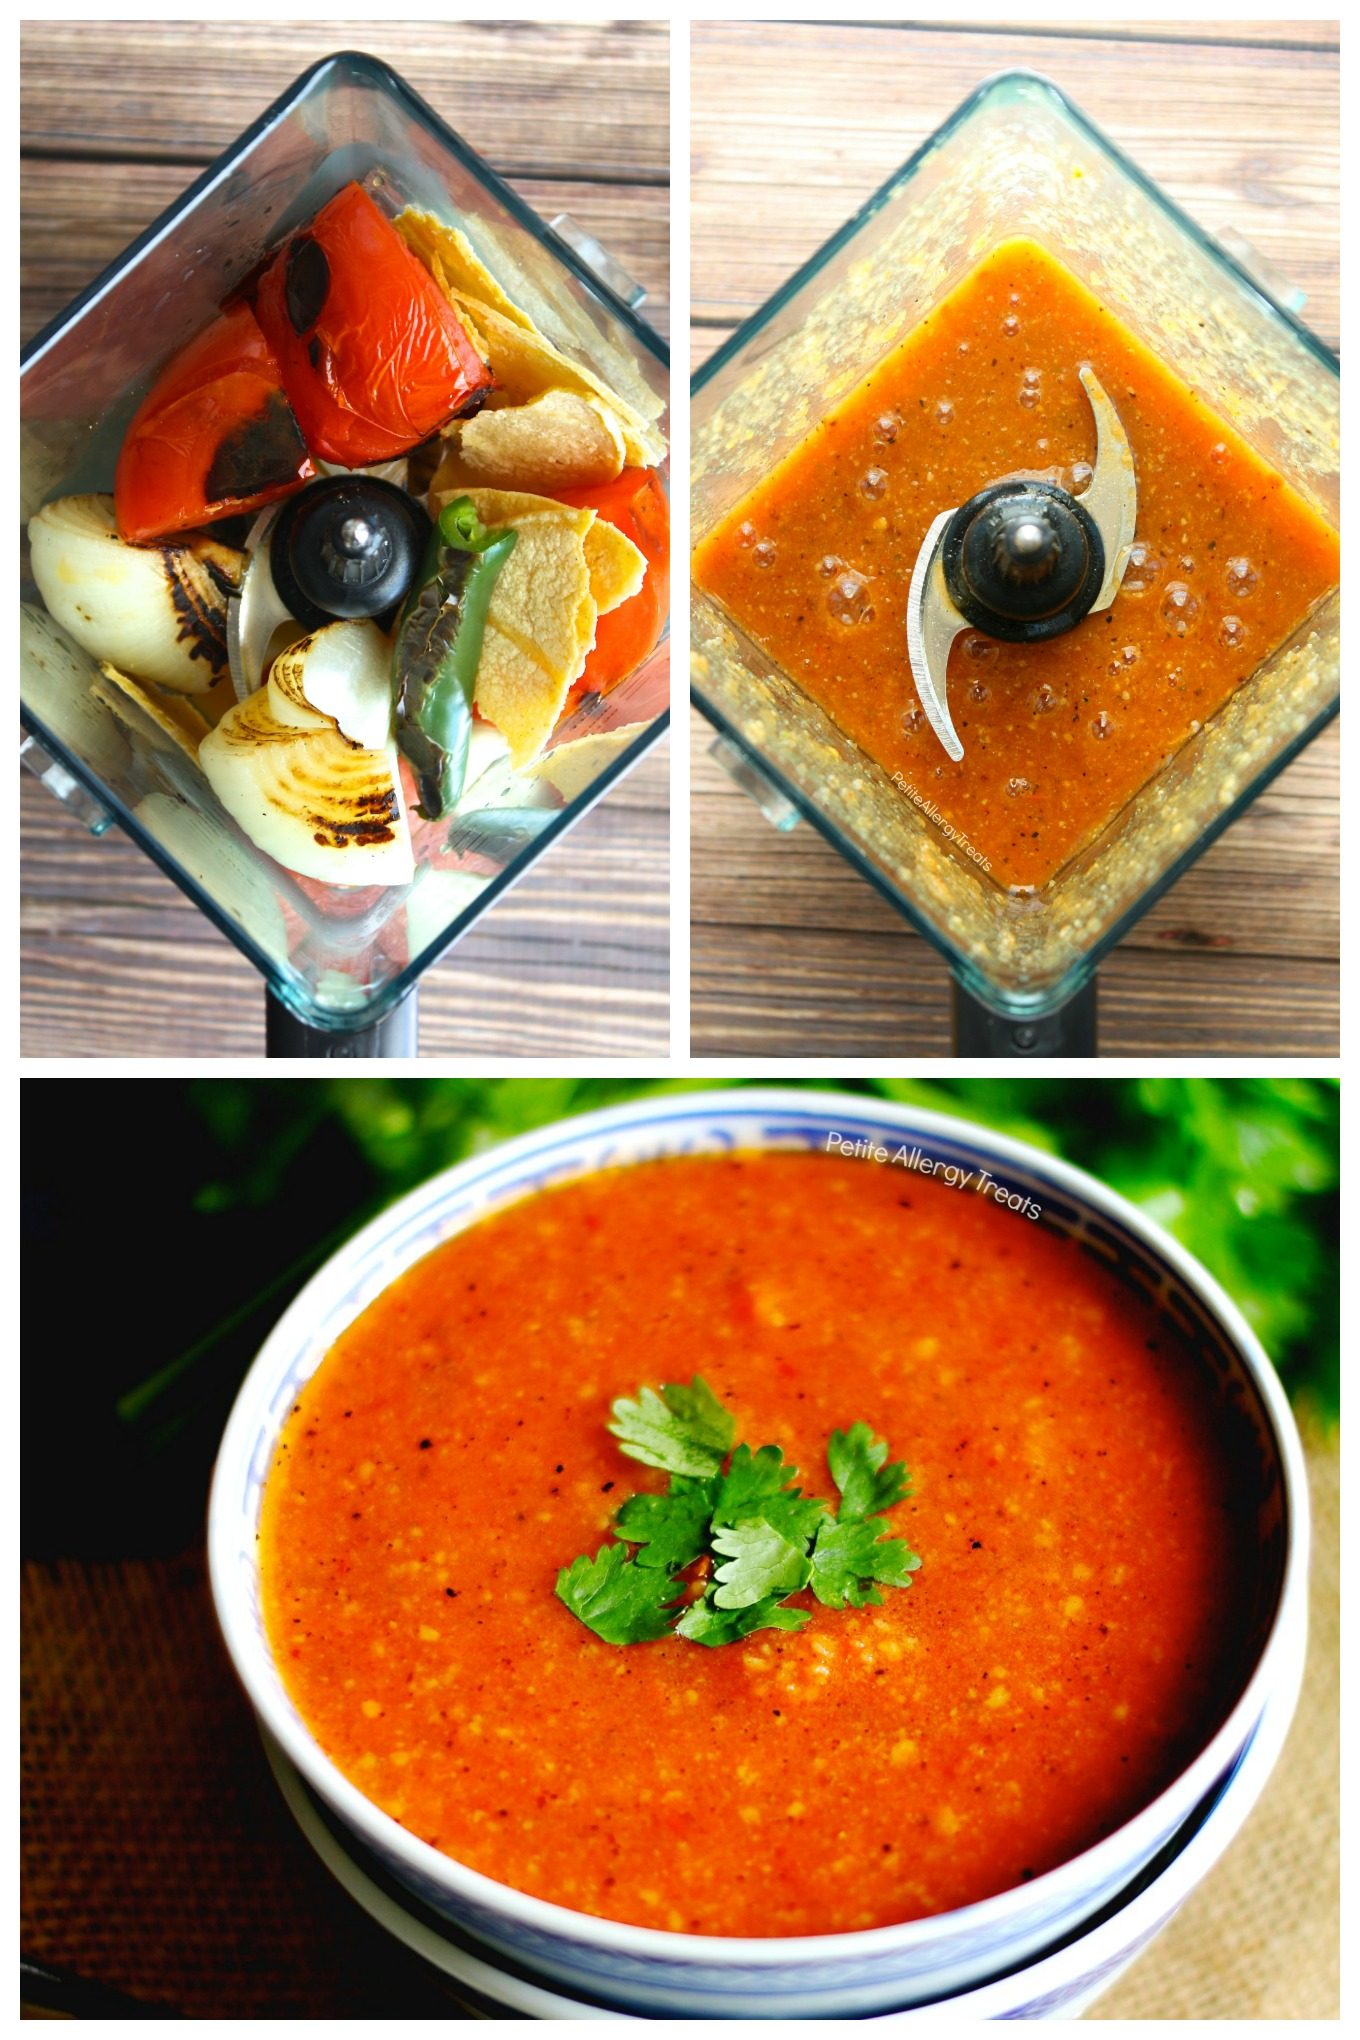 Vegetarian Tortilla Soup recipe (vegan)- Gluten Free flavorful soup with 8 ingredients. Food Allergy friendly dinner is ready!